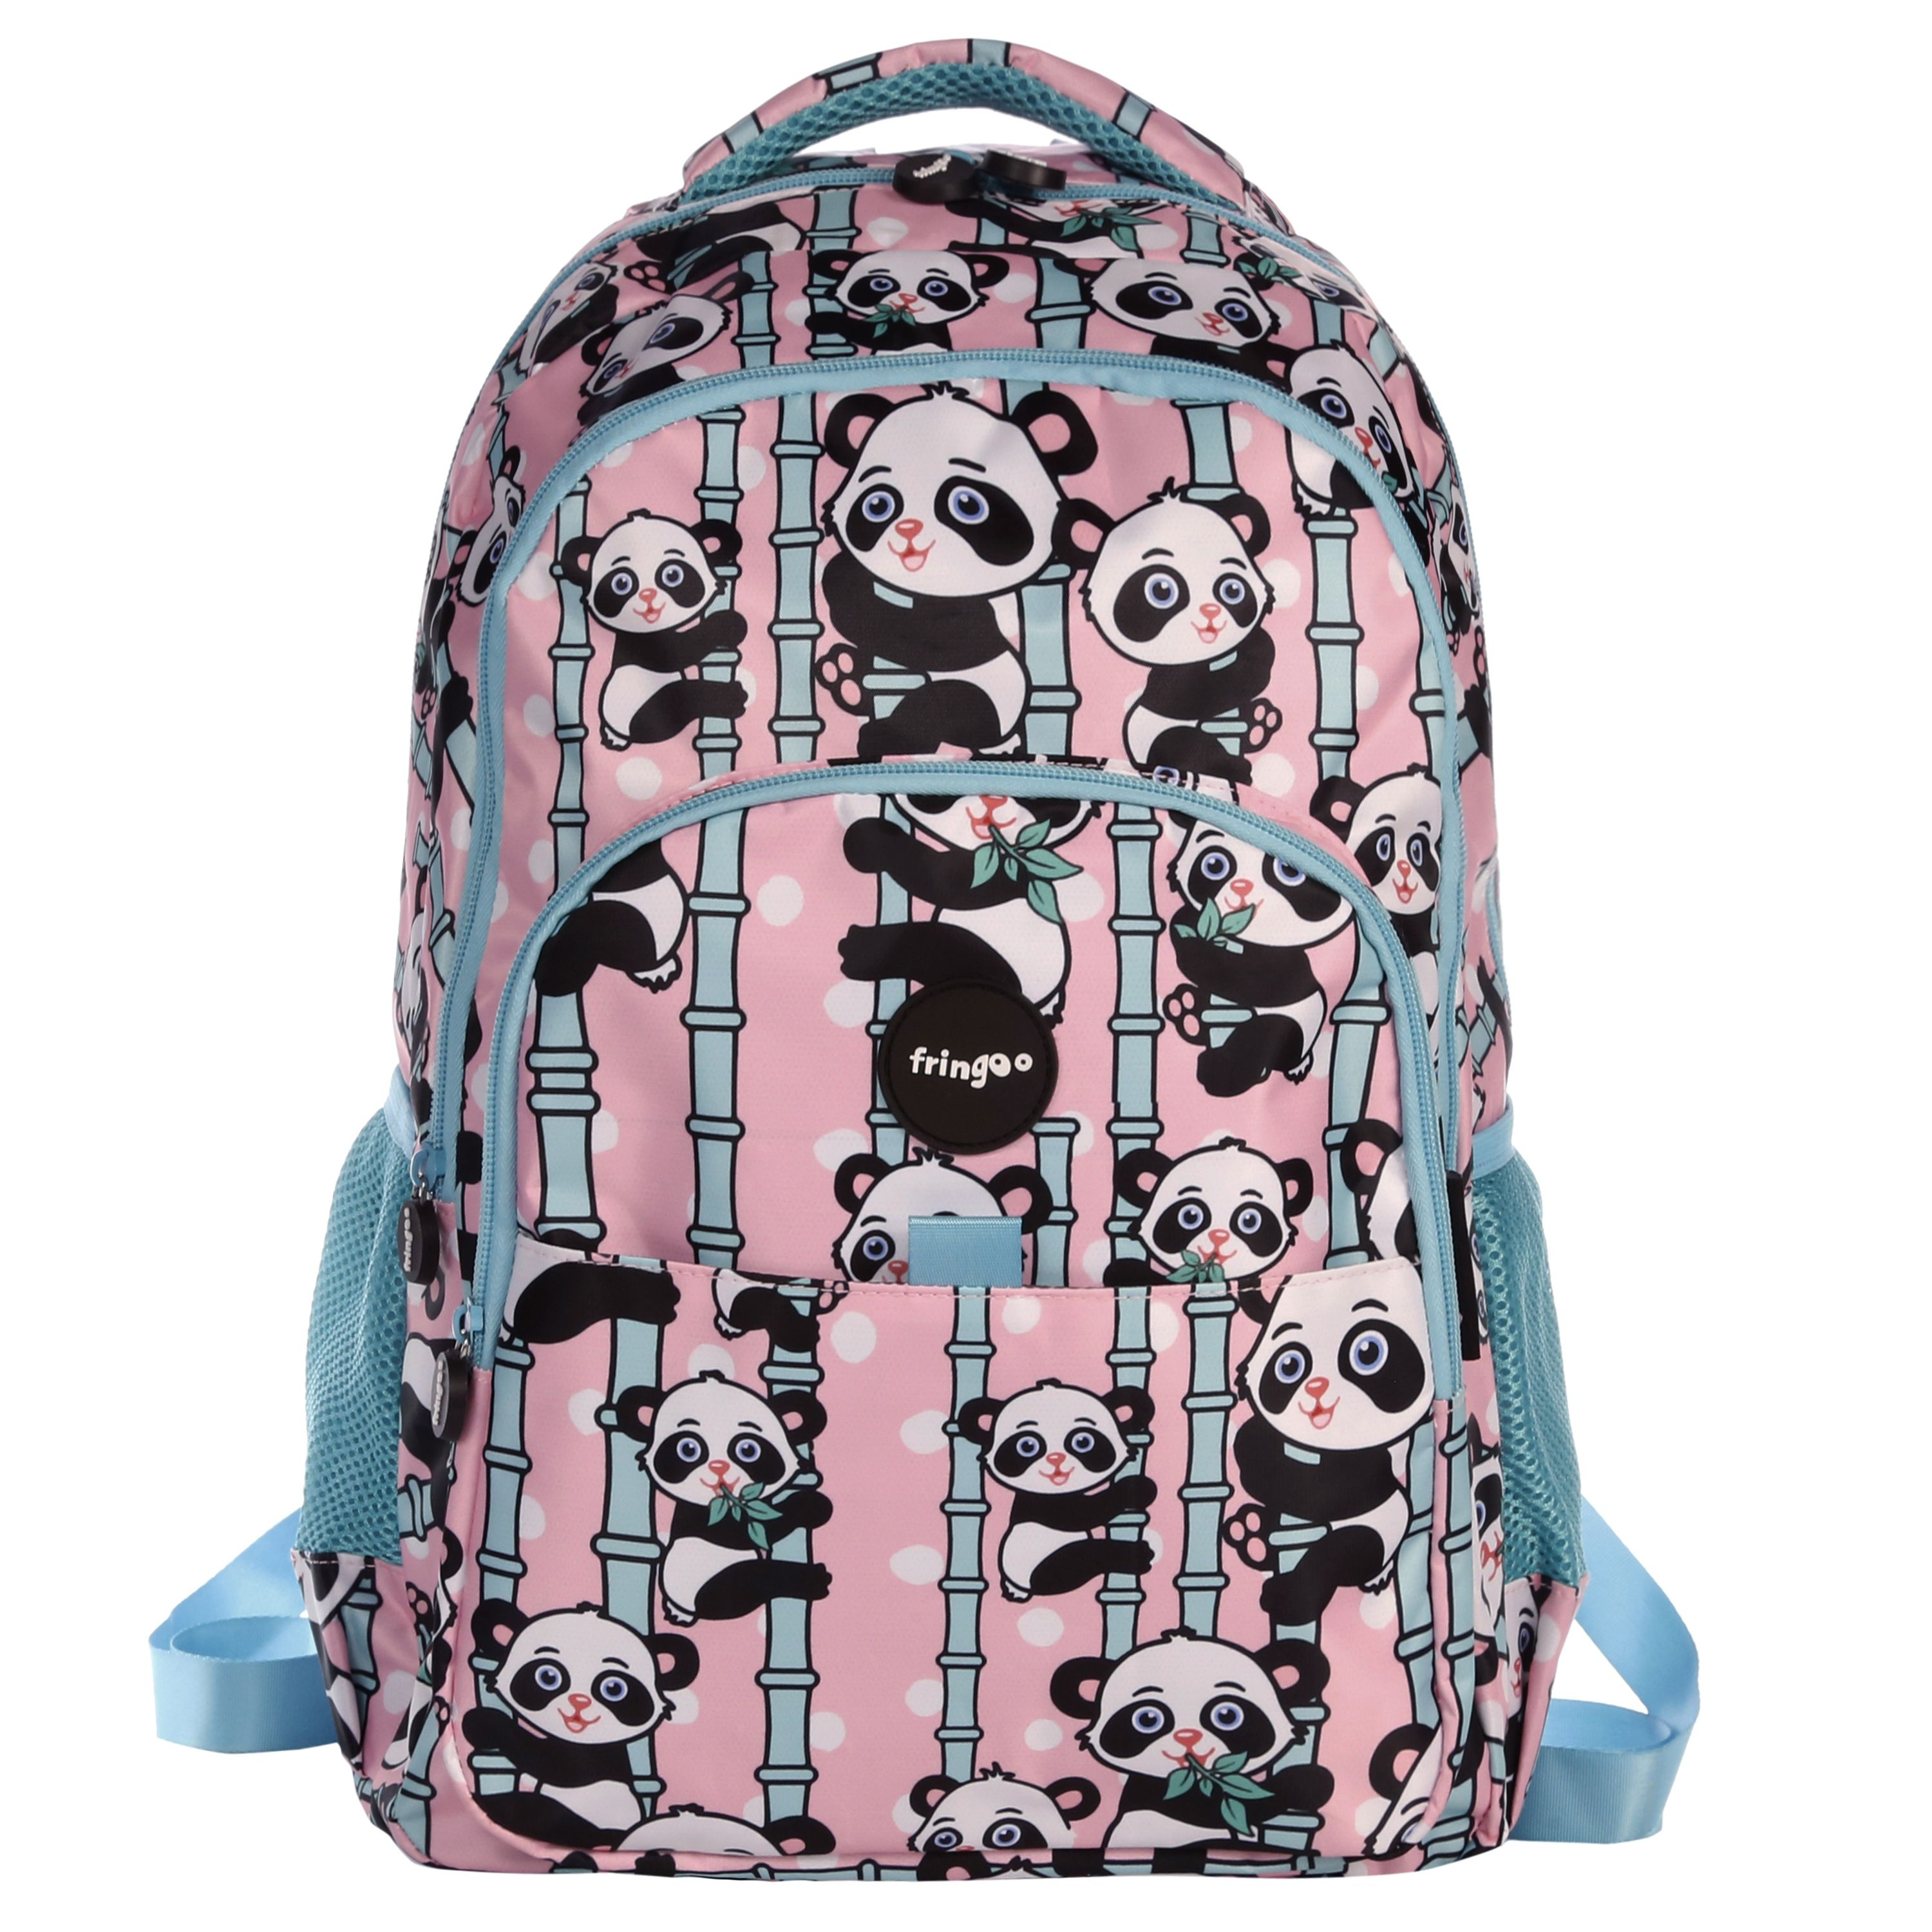 409dee01175d Multi Compartment Backpack - Pandas